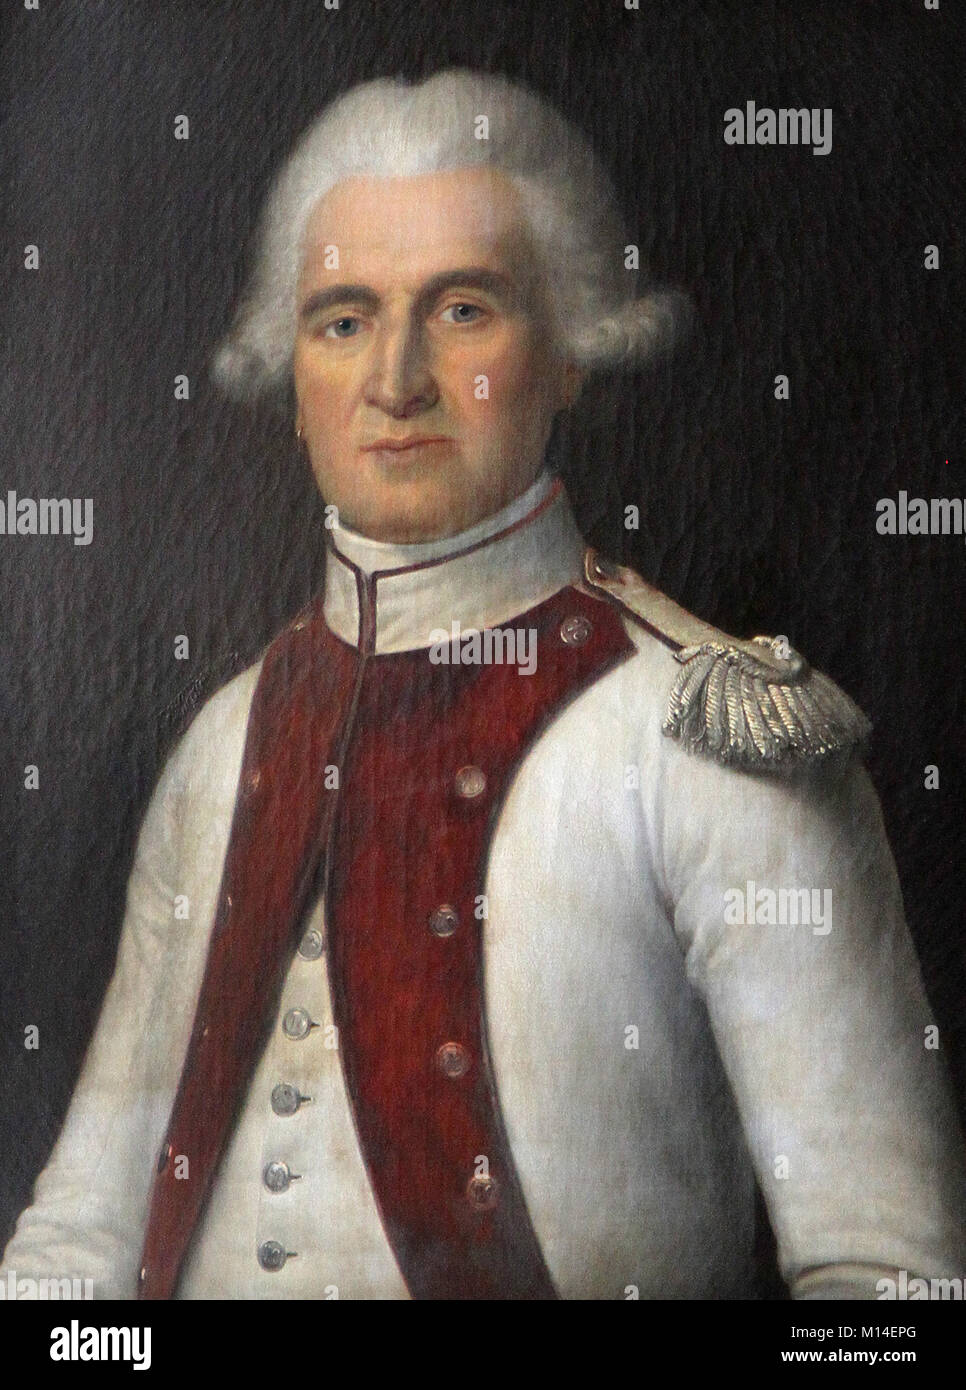 Oil canvas painting portrait of Lieutenant Colonel Mathieu Jean Philbert Serurier, Marshal of the Empire by F. Delance - Stock Image